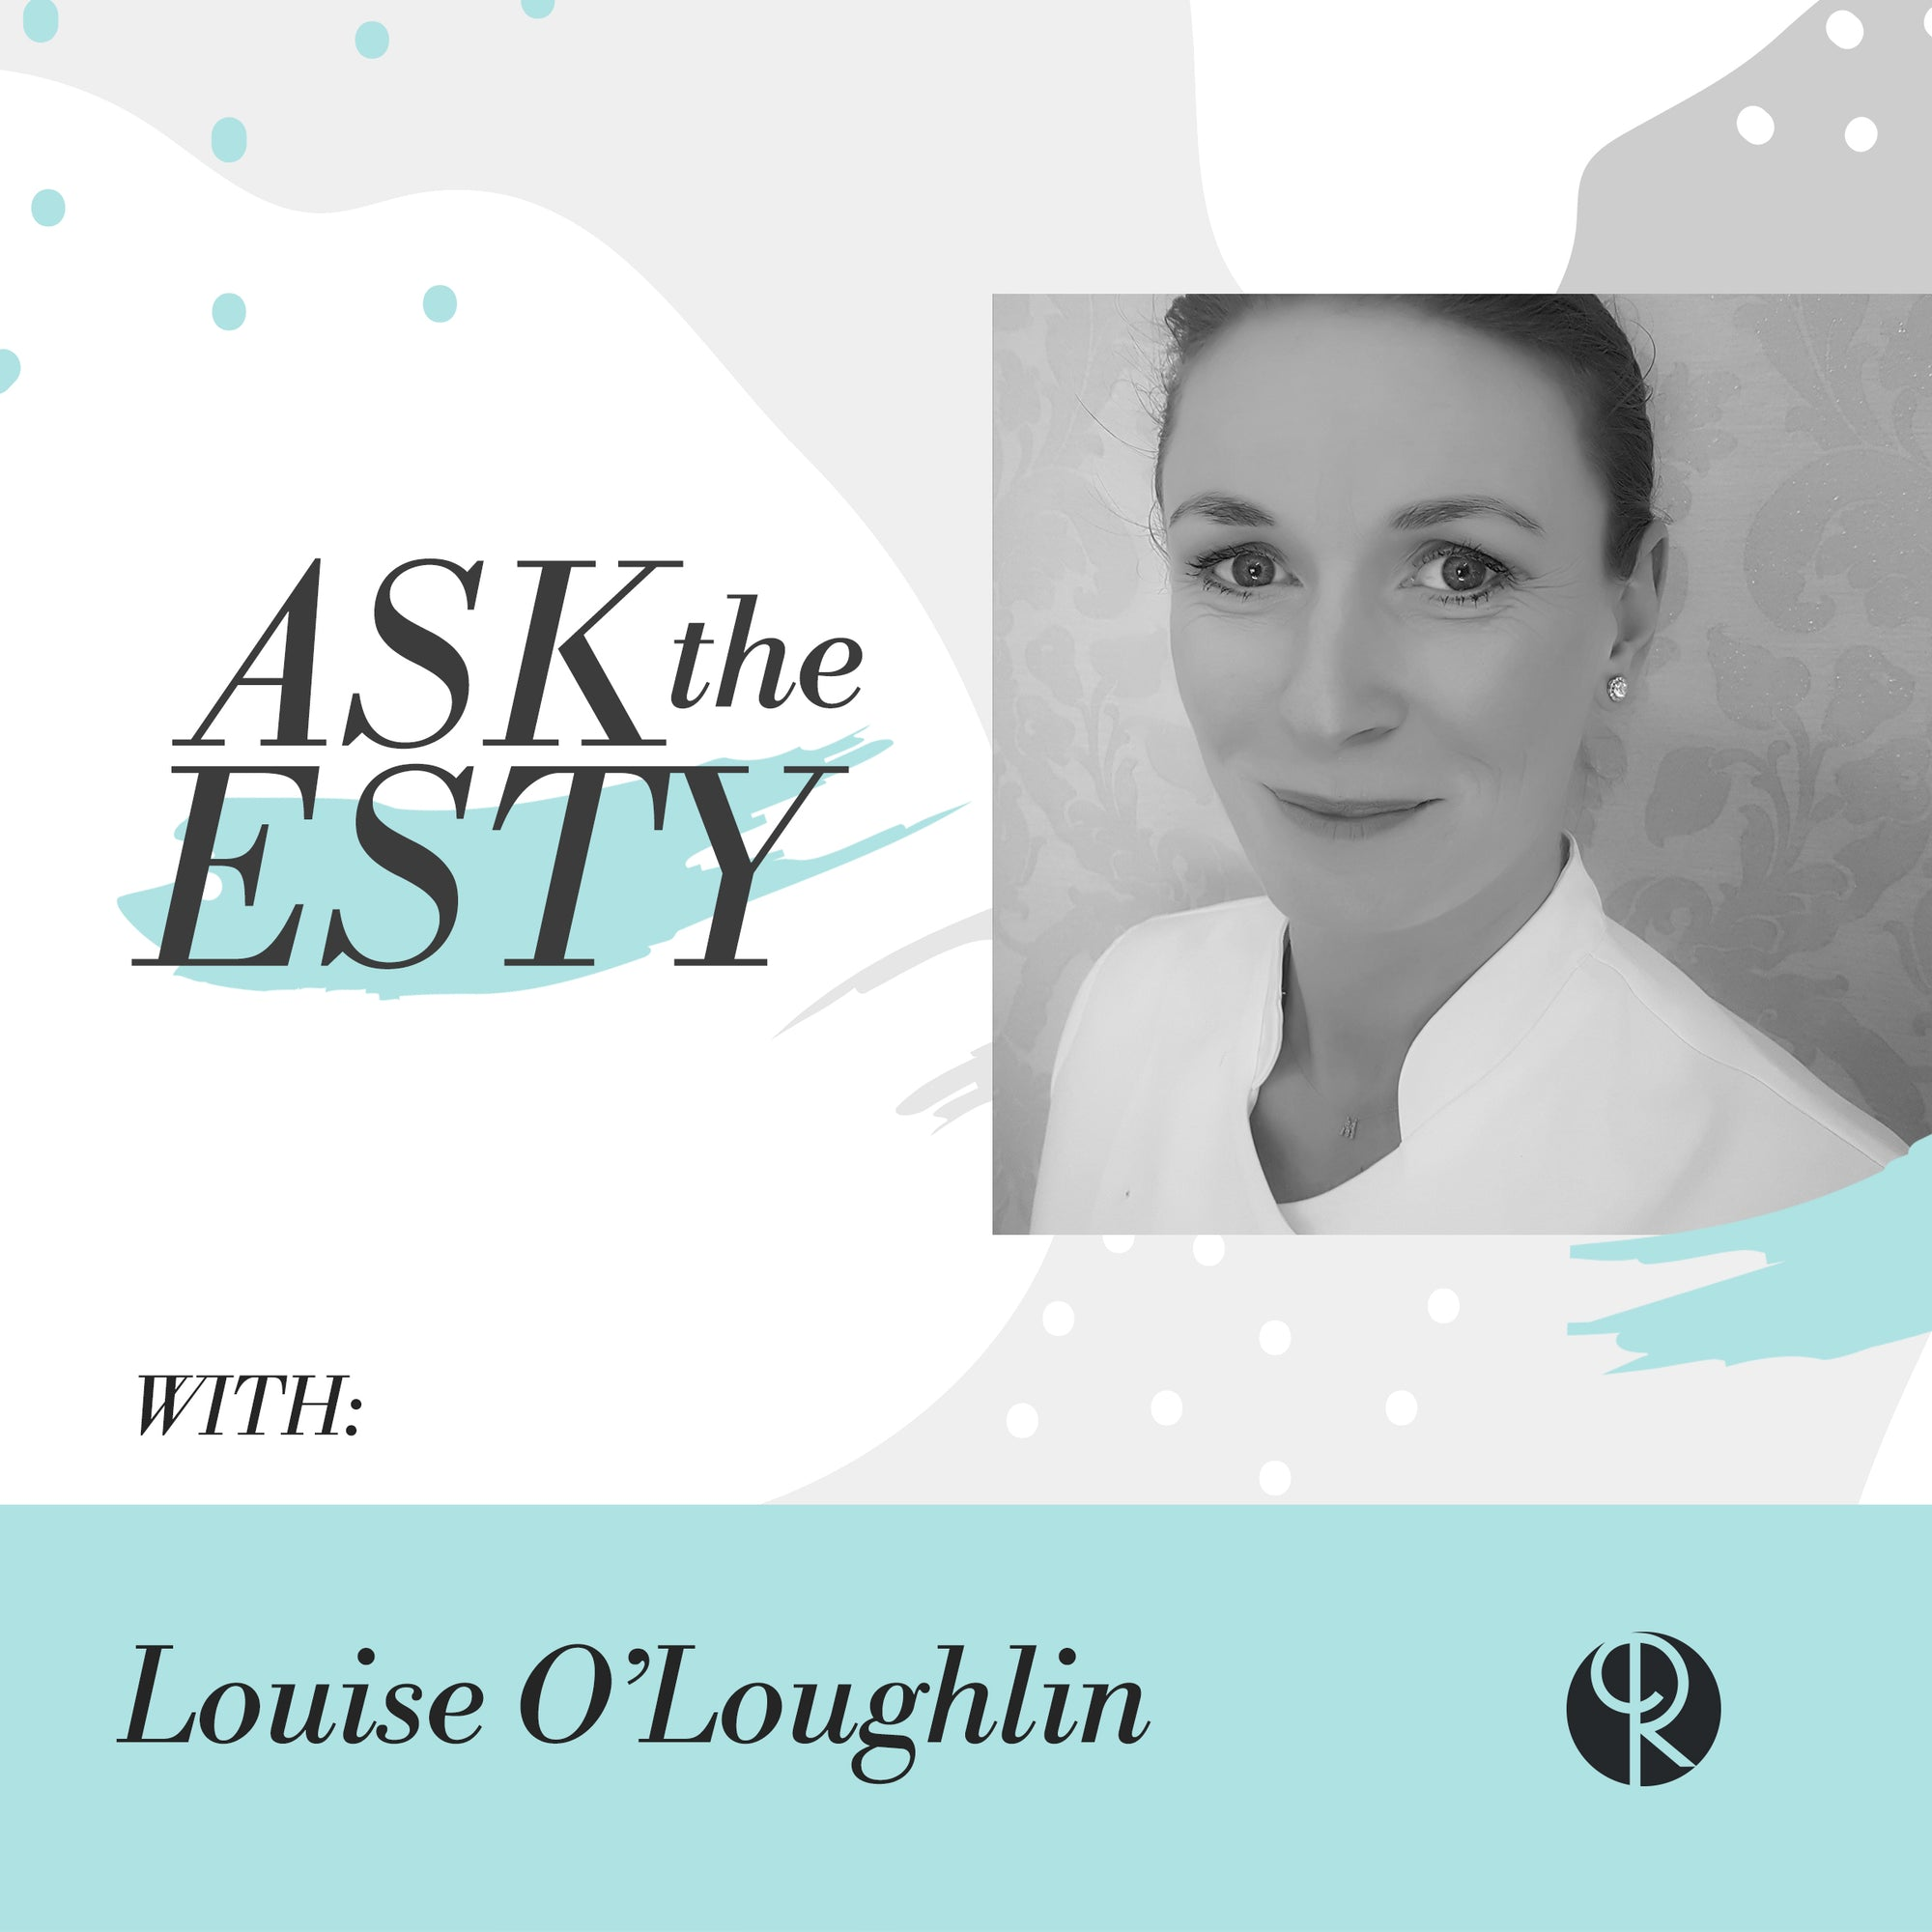 Ask the Esty: 3 Tips to Take Care of Your Skin Right Now